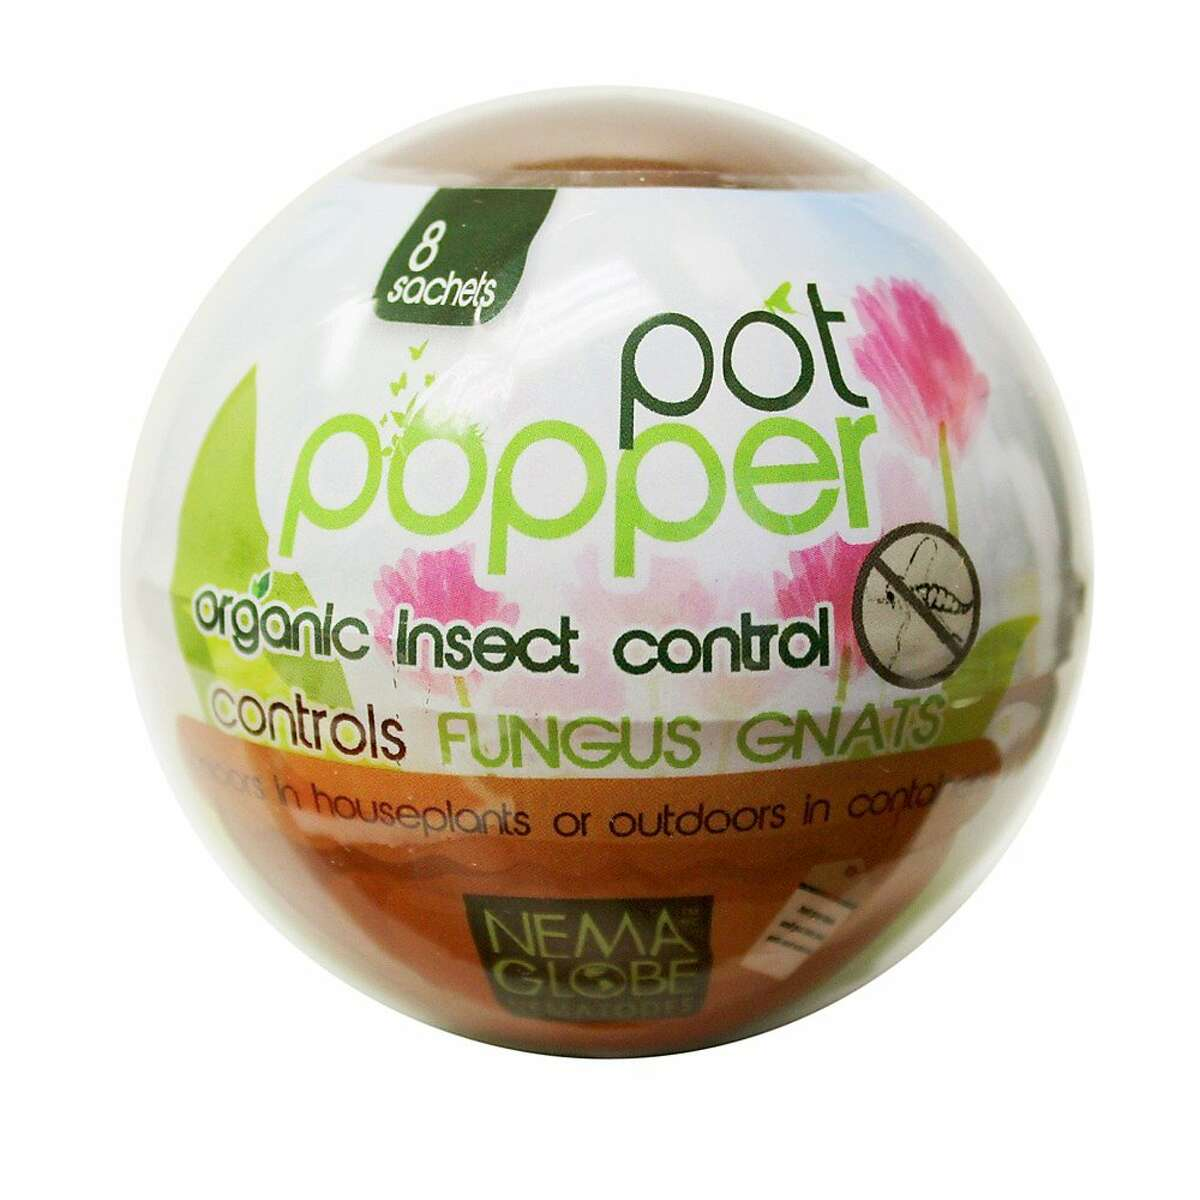 This ball-shaped package contains nematodes to combat annoying black gnats in container plants.